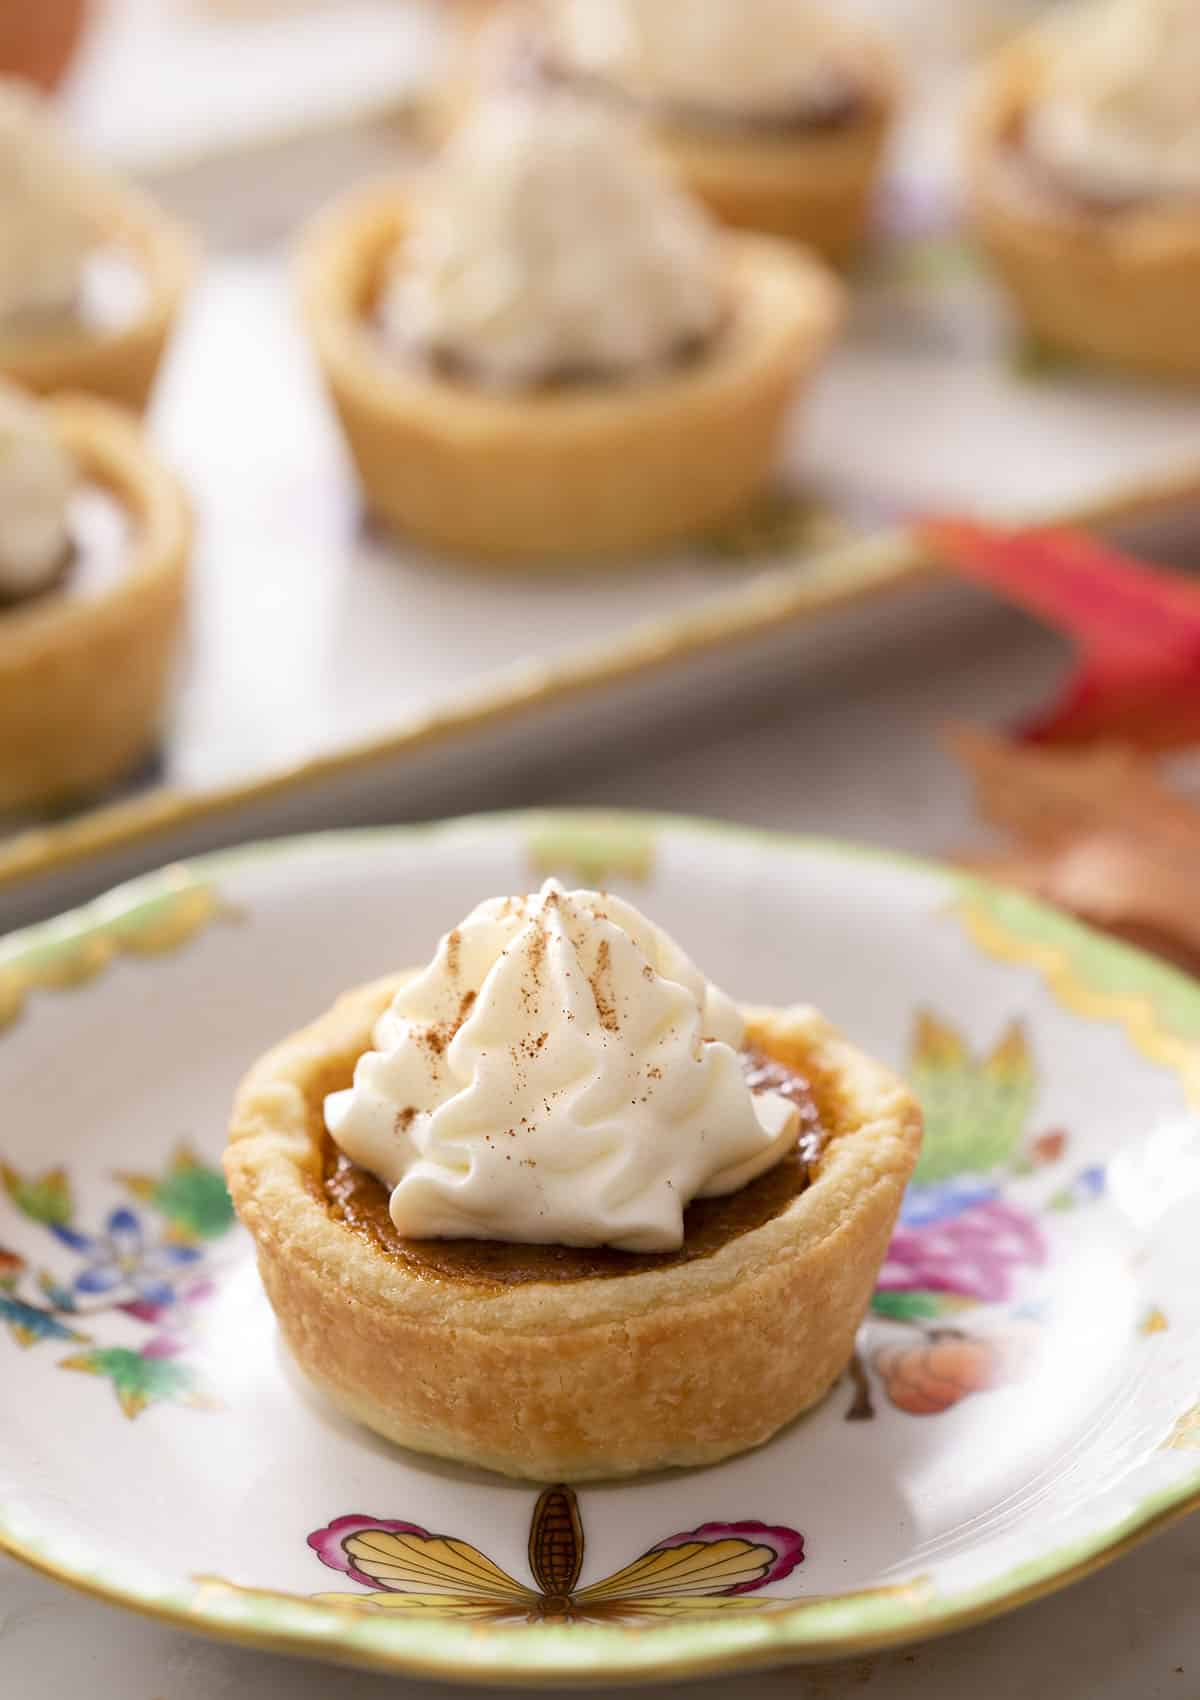 Mini pumpkin pies topped with whipped cream on a marble counter.